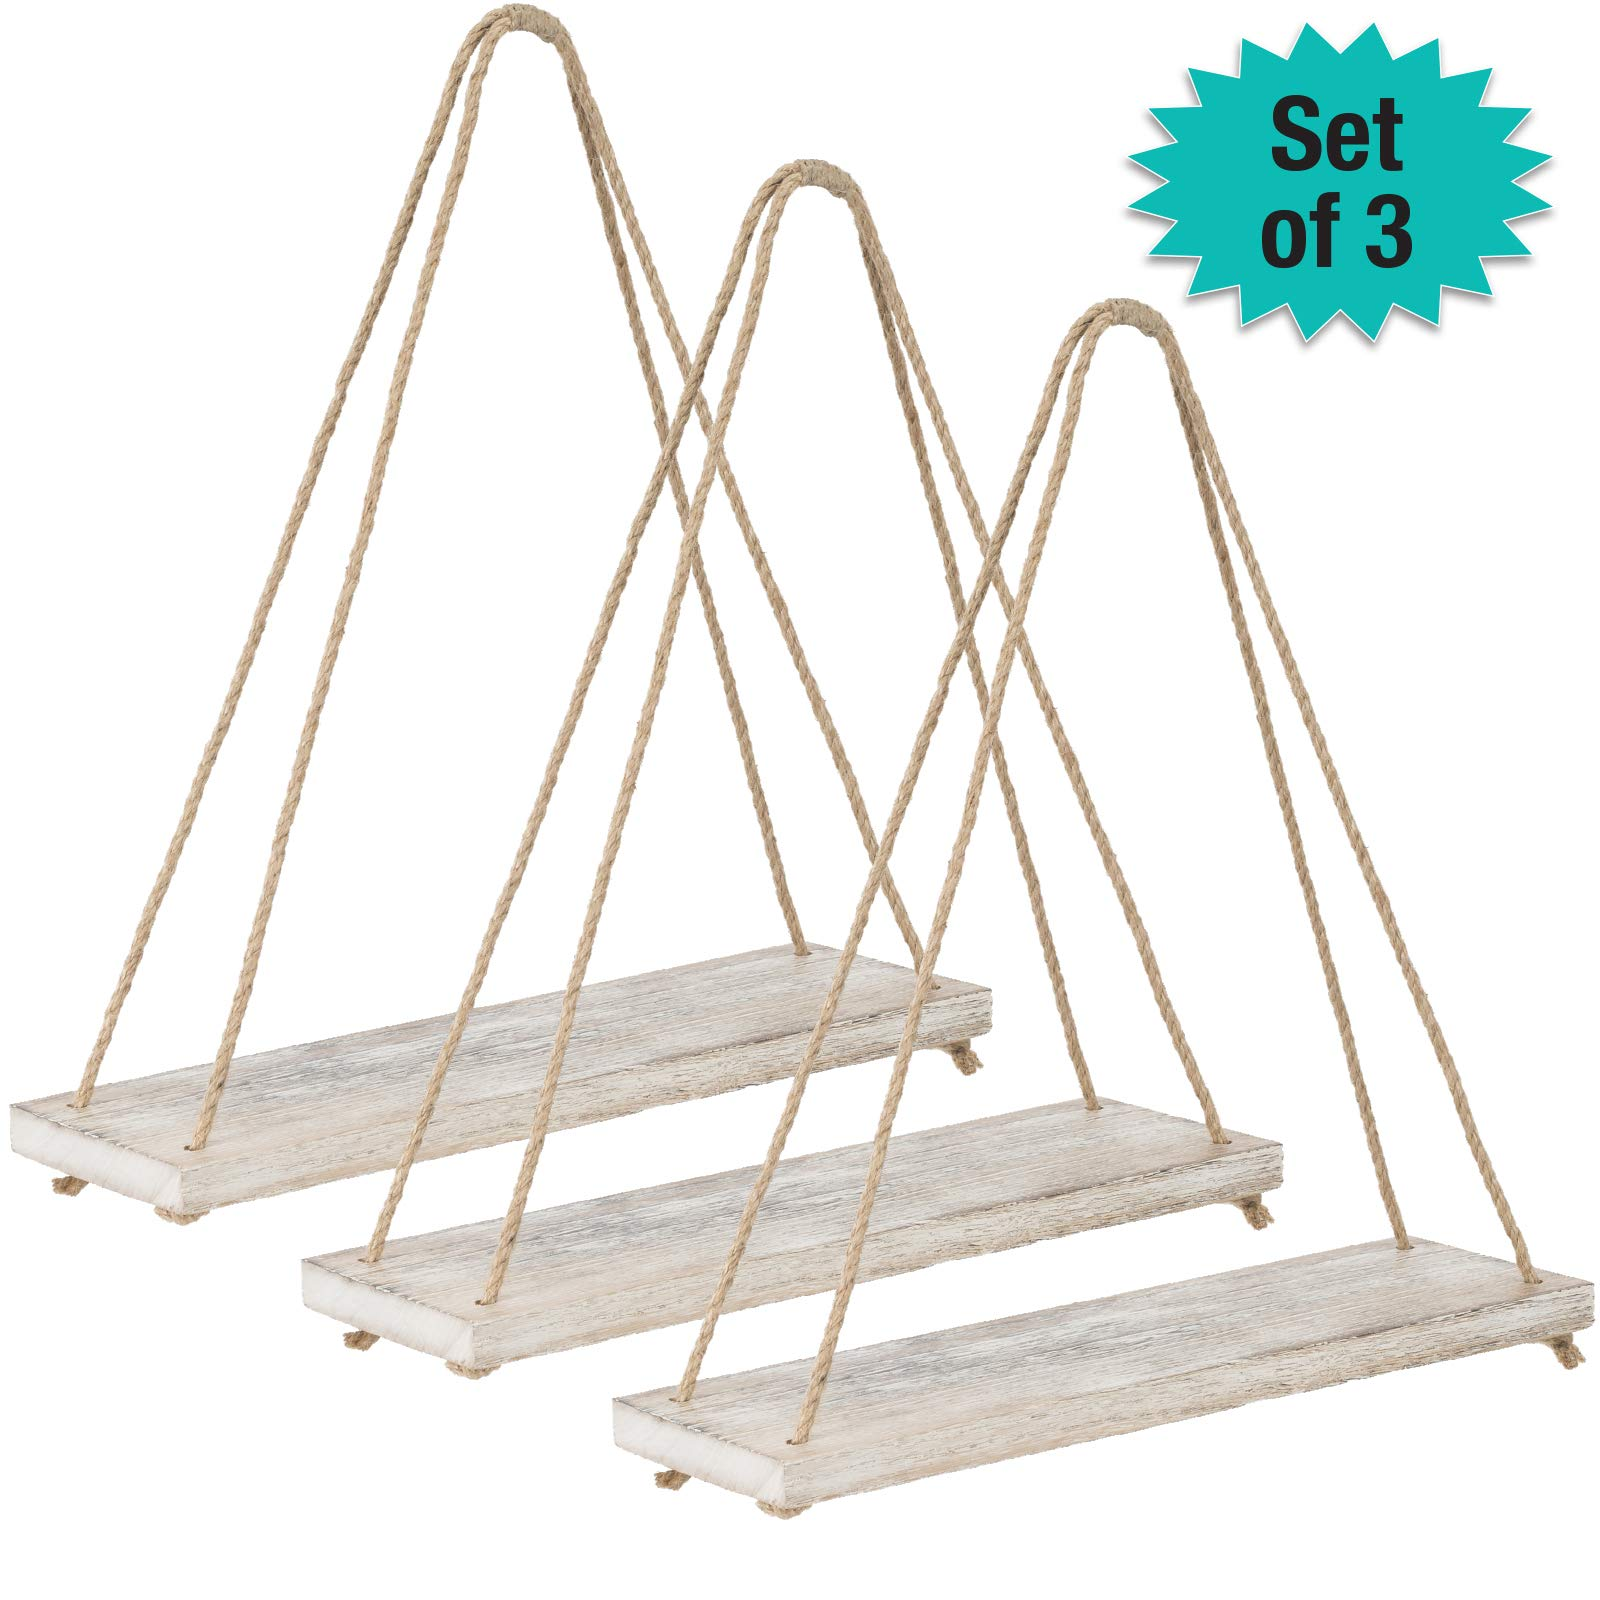 Rustic Distressed Wood Hanging Shelves: 17-Inch with Swing Rope Floating Shelves (Pack of 3)